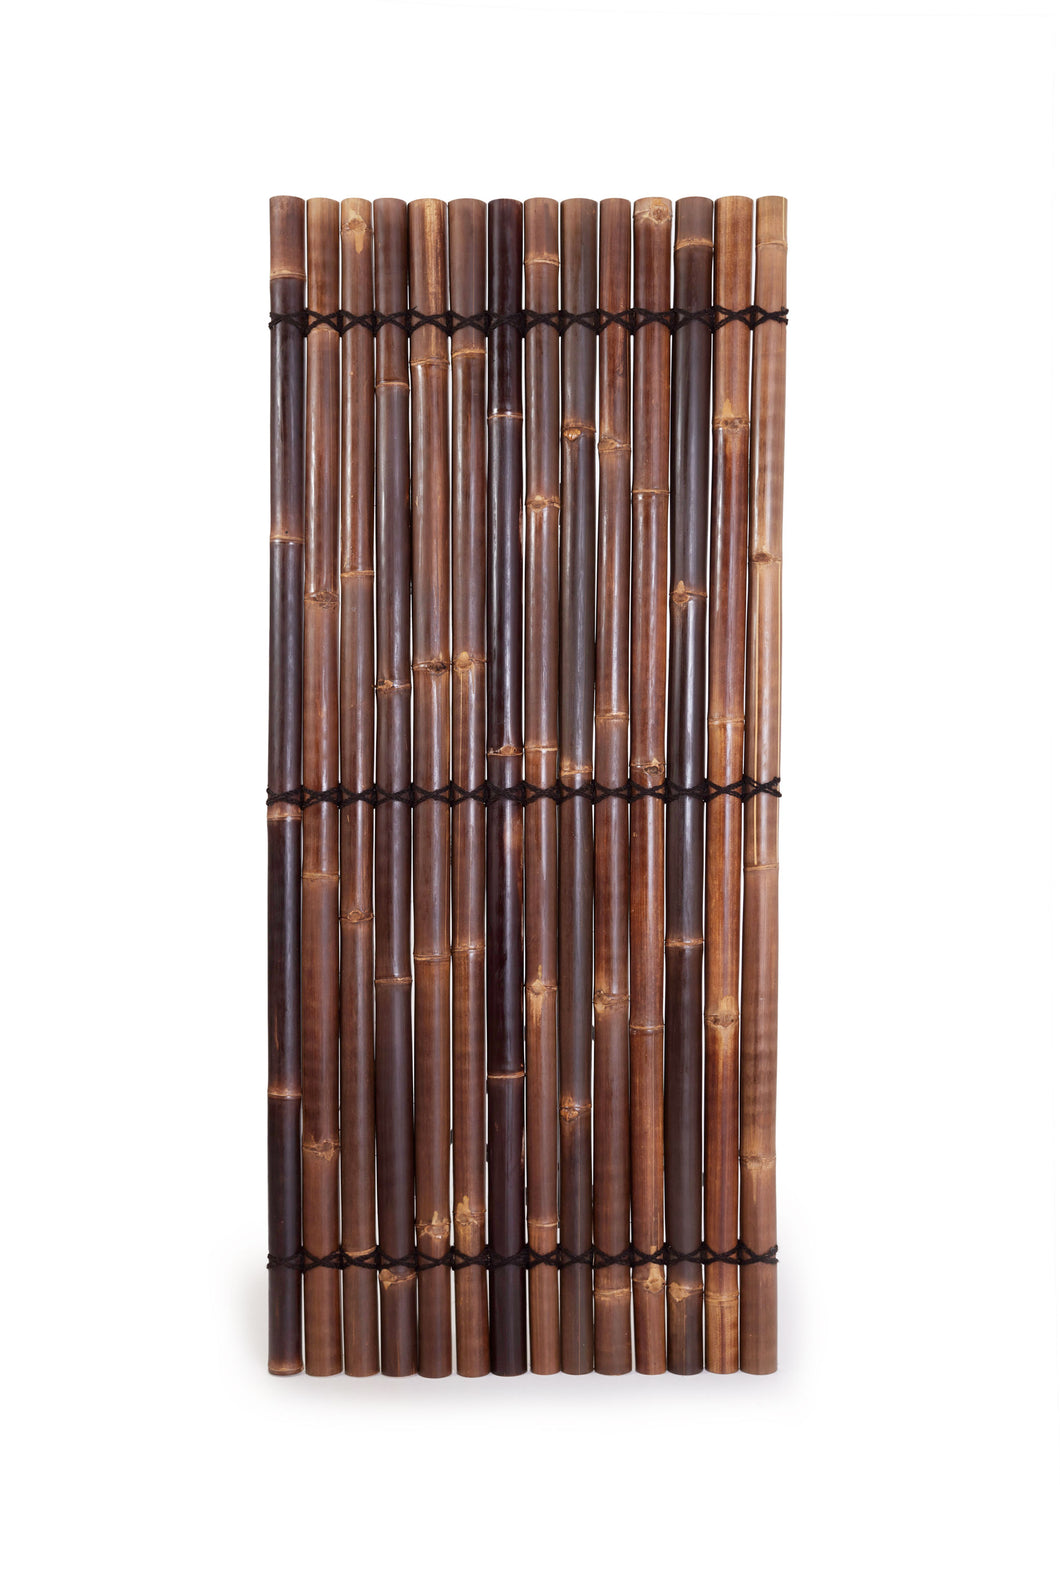 1.8m - Premium Black Bamboo Fencing Panels / Privacy Screening